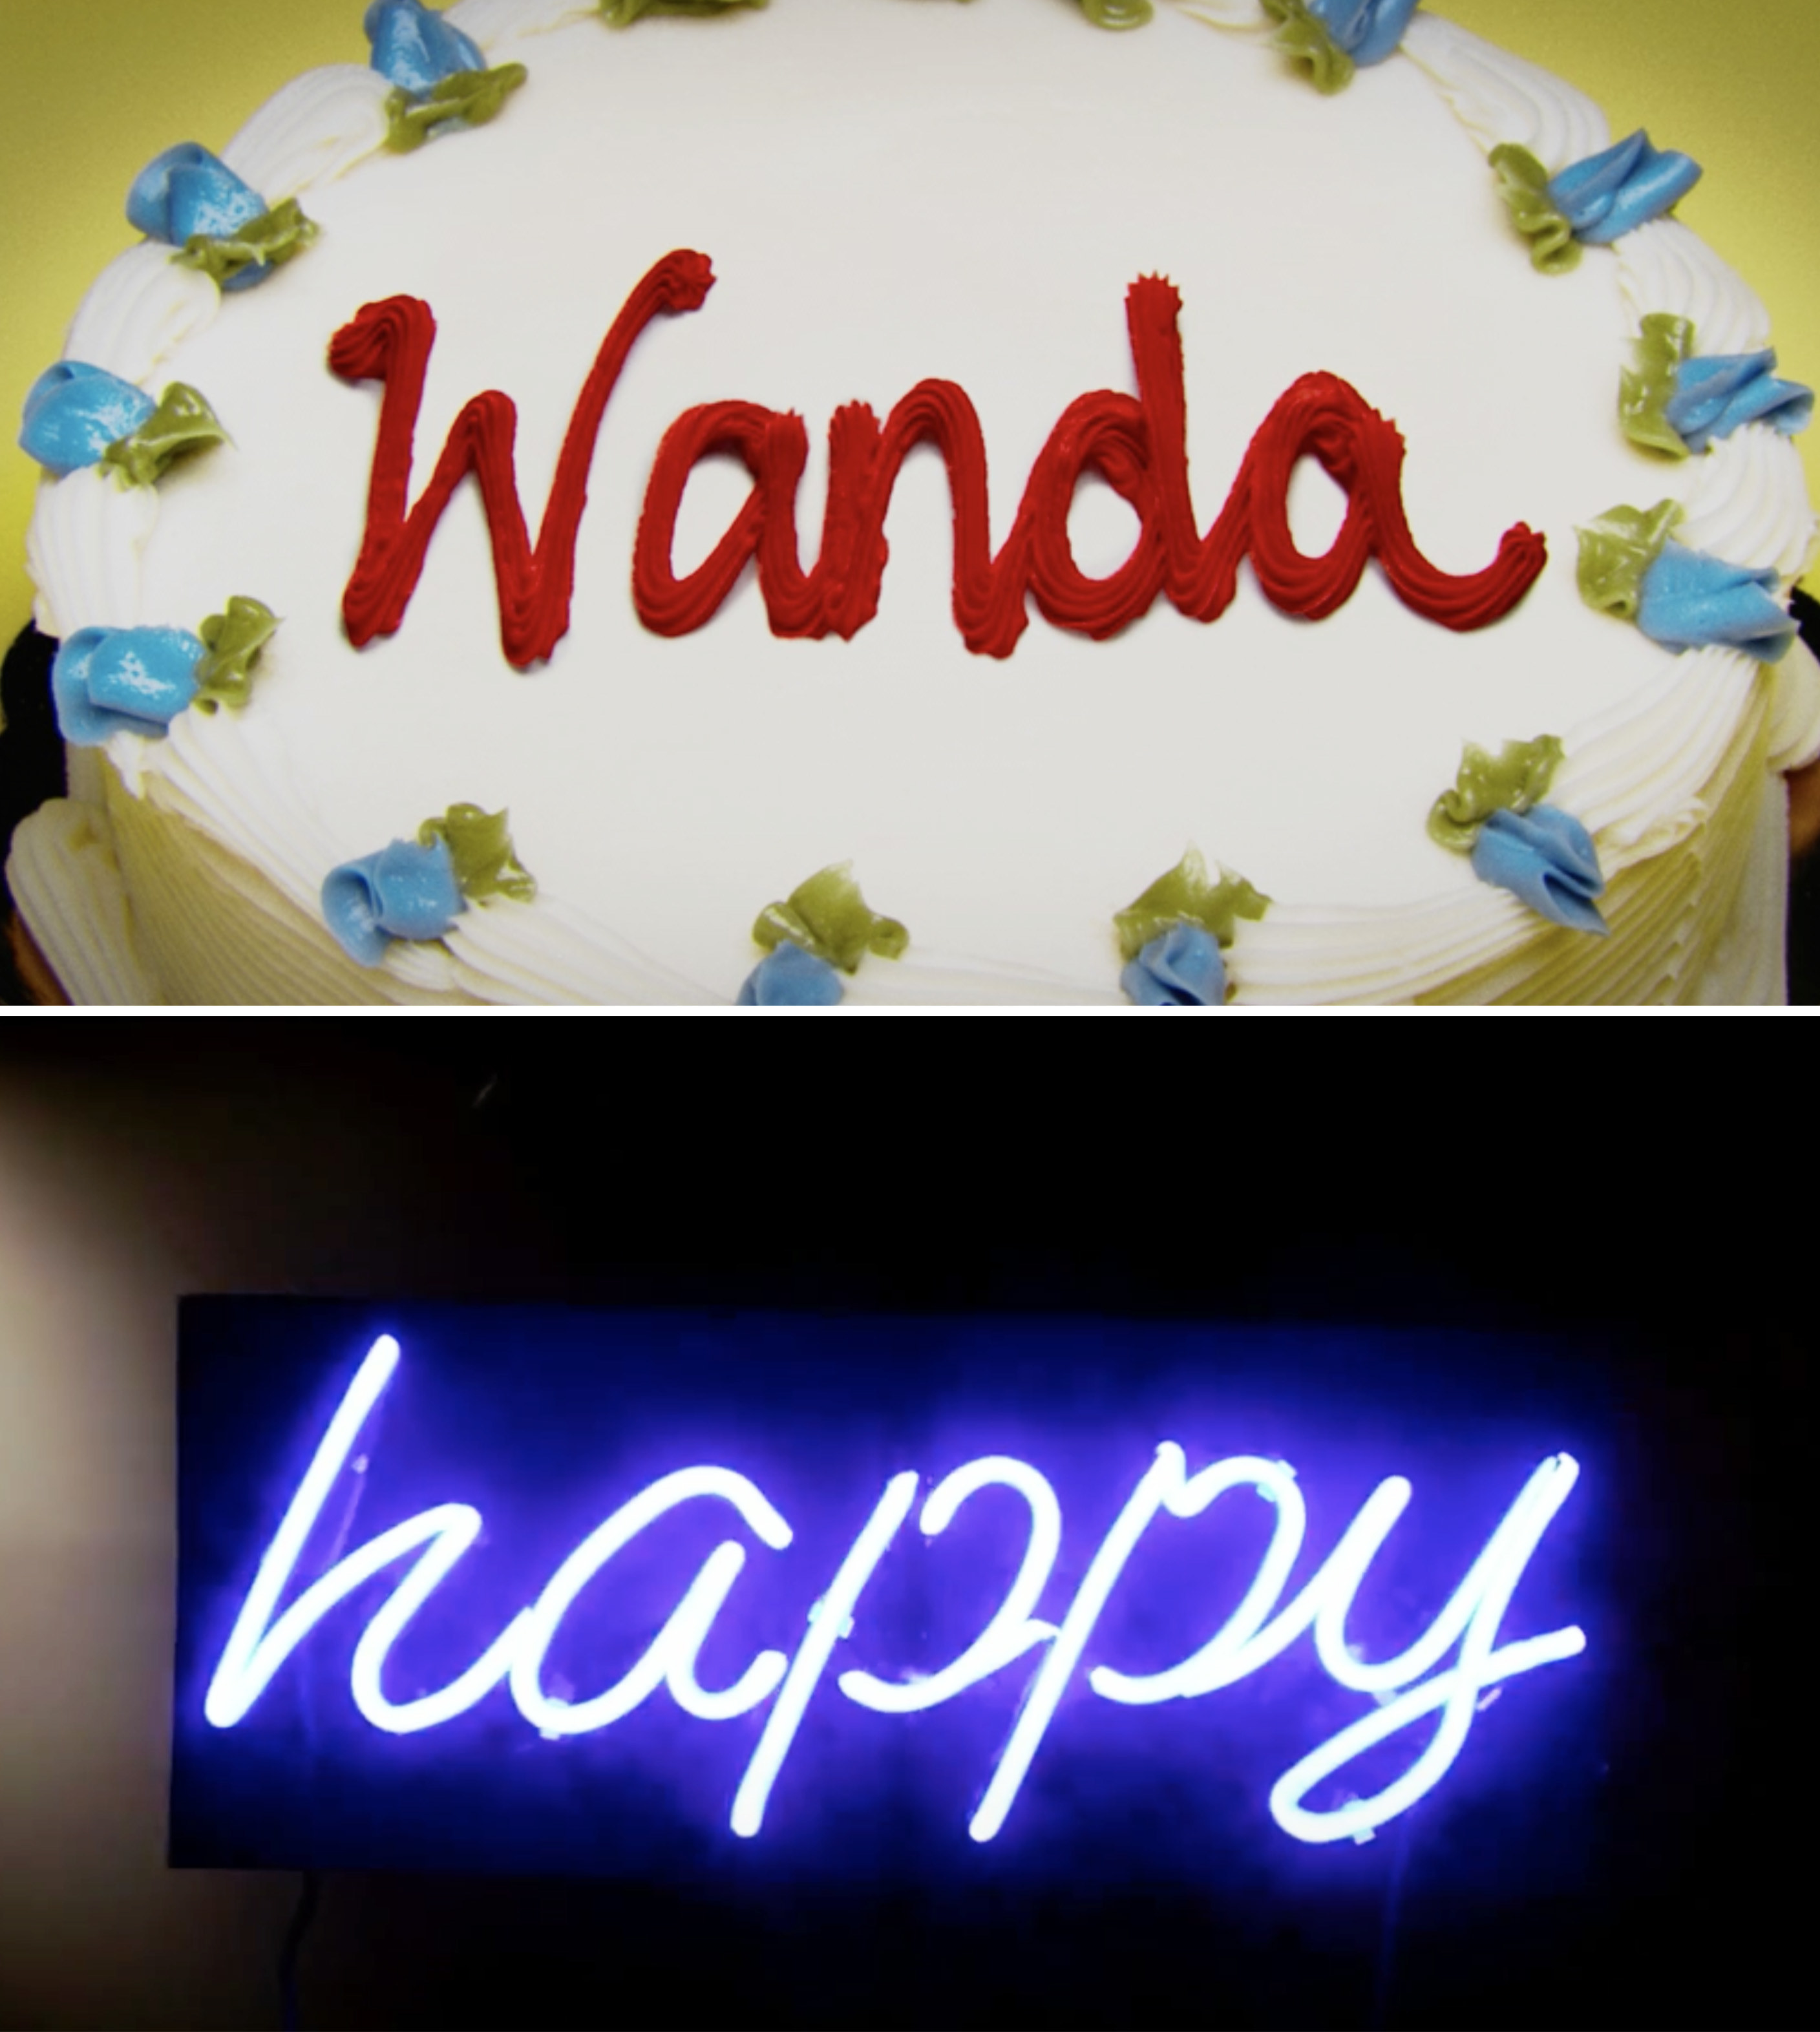 "A birthday cake that says ""Wanda"" vs. a neon sign that says ""Happy"""